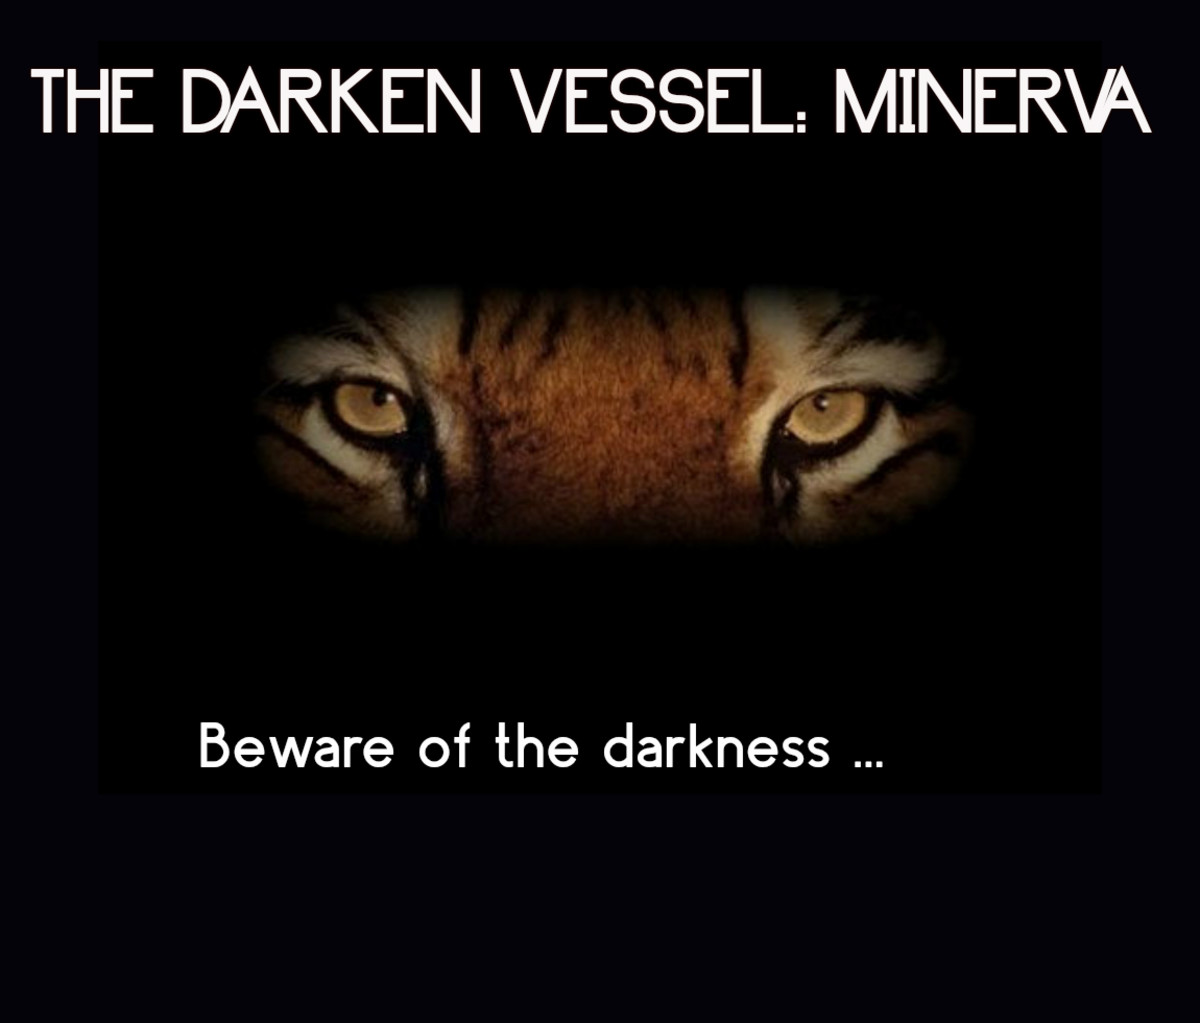 The Darken Vessel: Minerva 18